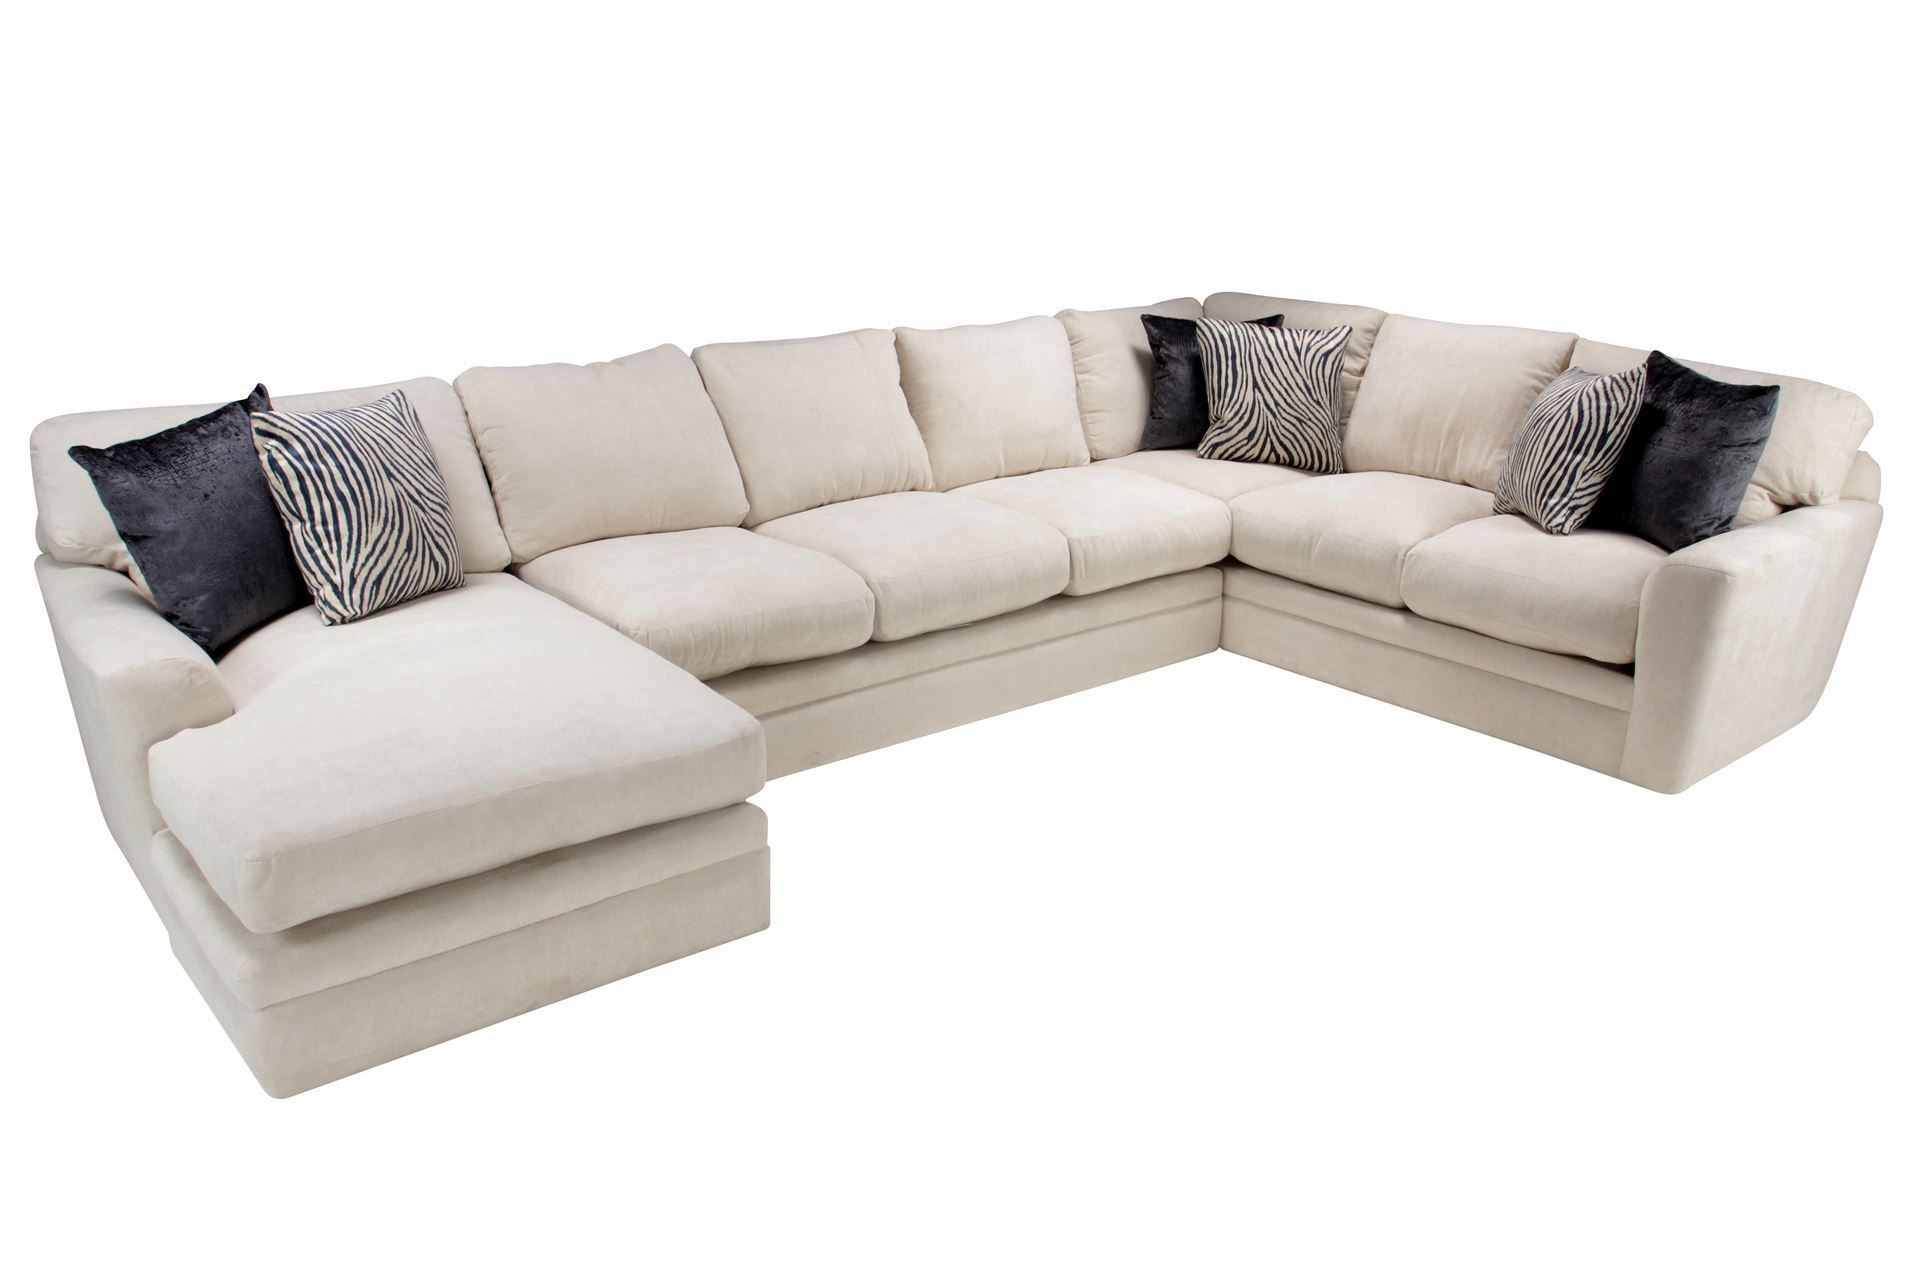 Glam Sofa Neutral Slipcovers Love This Sectional Living Spaces Glamour 3 Piece